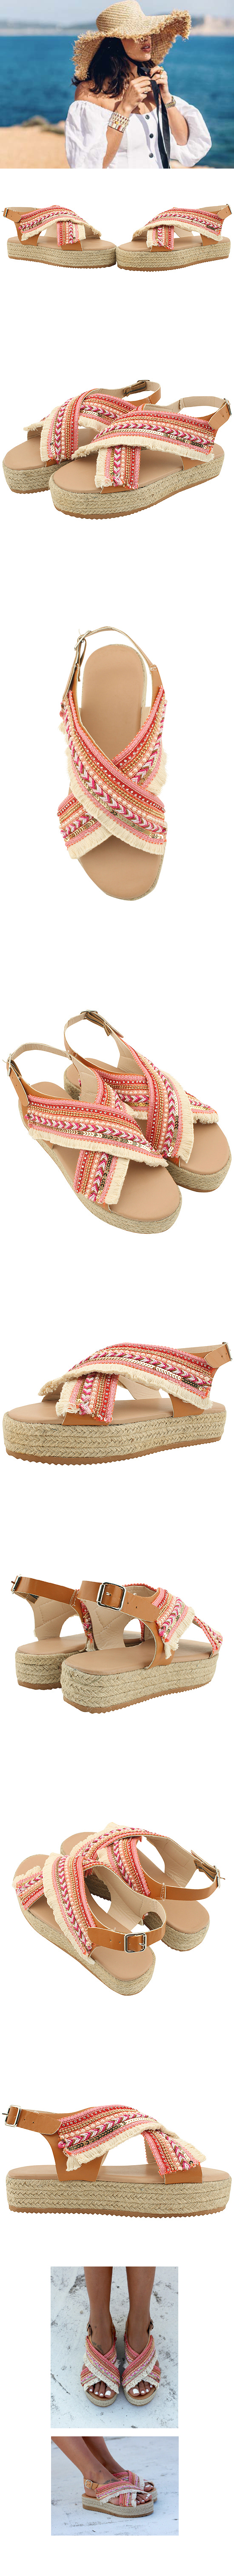 Bead strap espadue wedge heel sandals